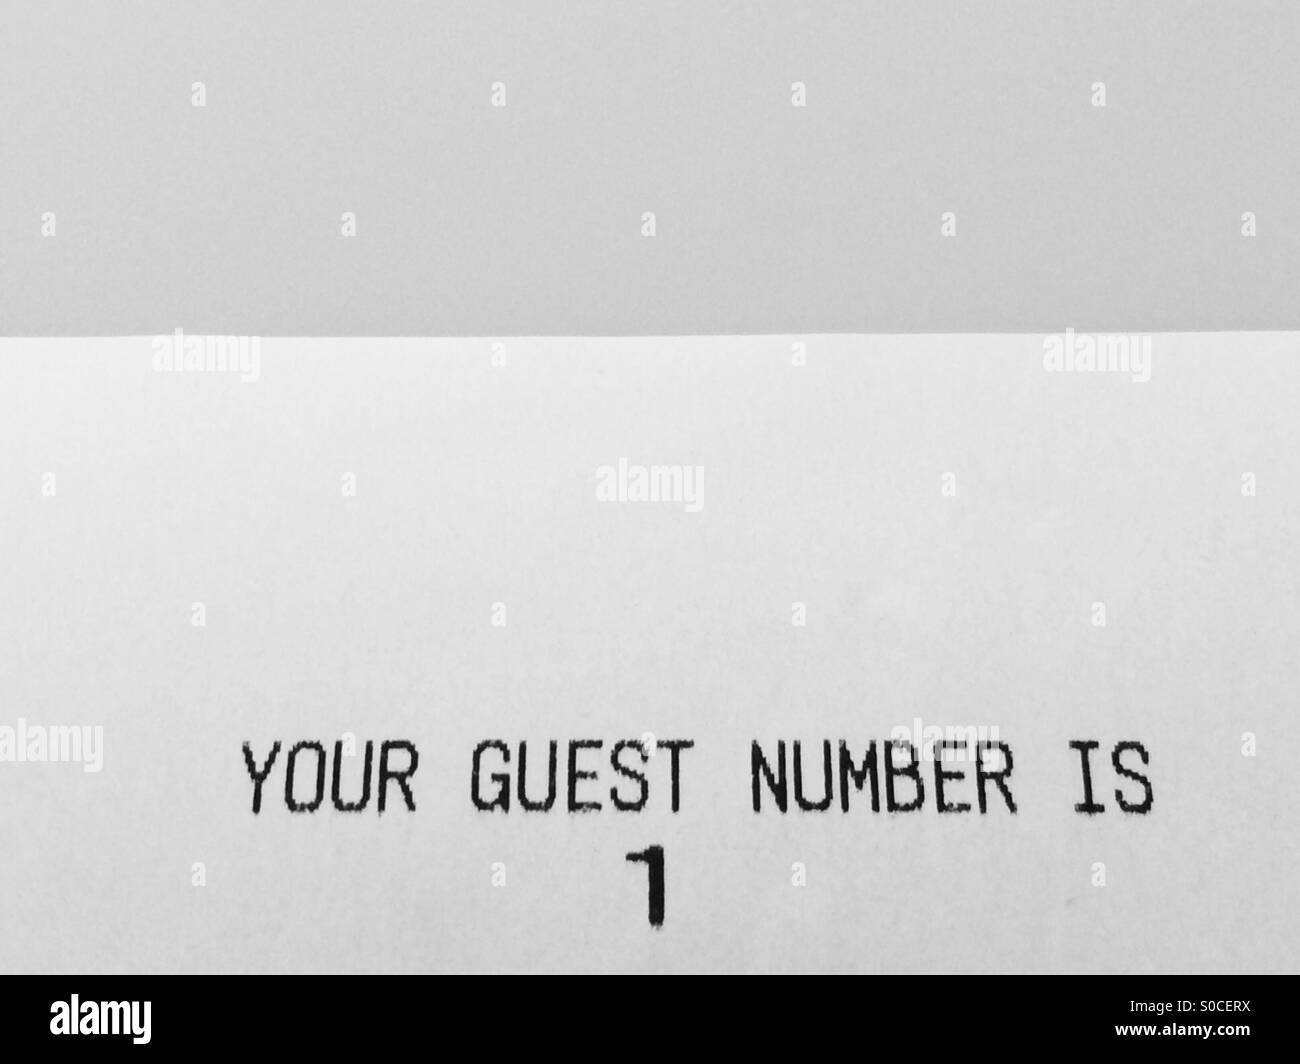 Customer number 1, the first in line - Stock Image